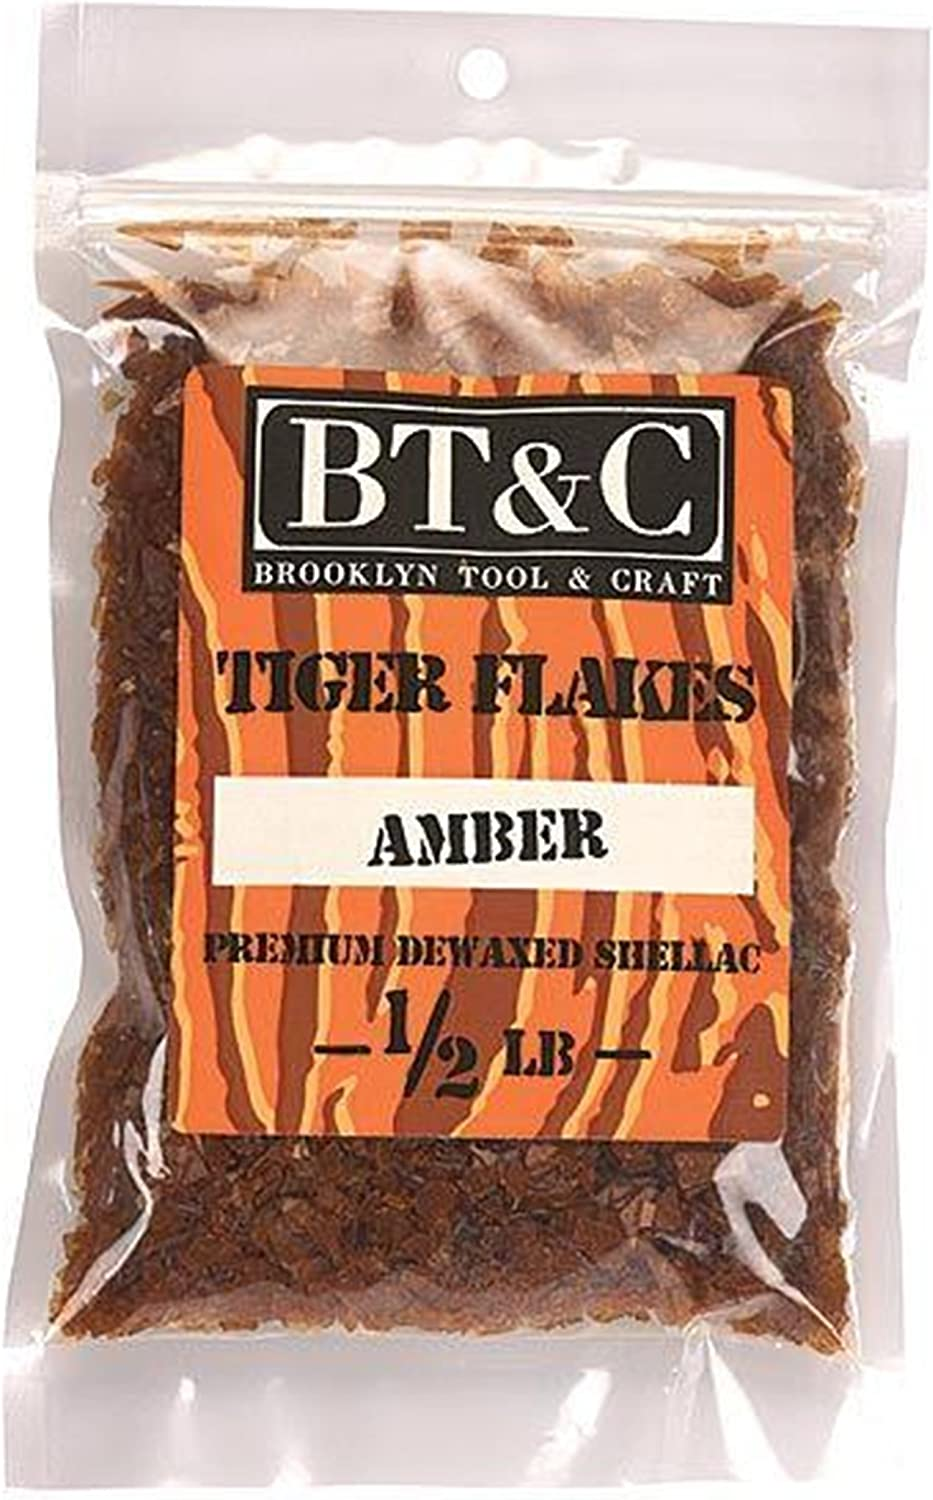 Sale Special Price Brooklyn Tool and Craft Shellac Flakes NEW before selling ☆ Amber 1 Tiger 2 lb